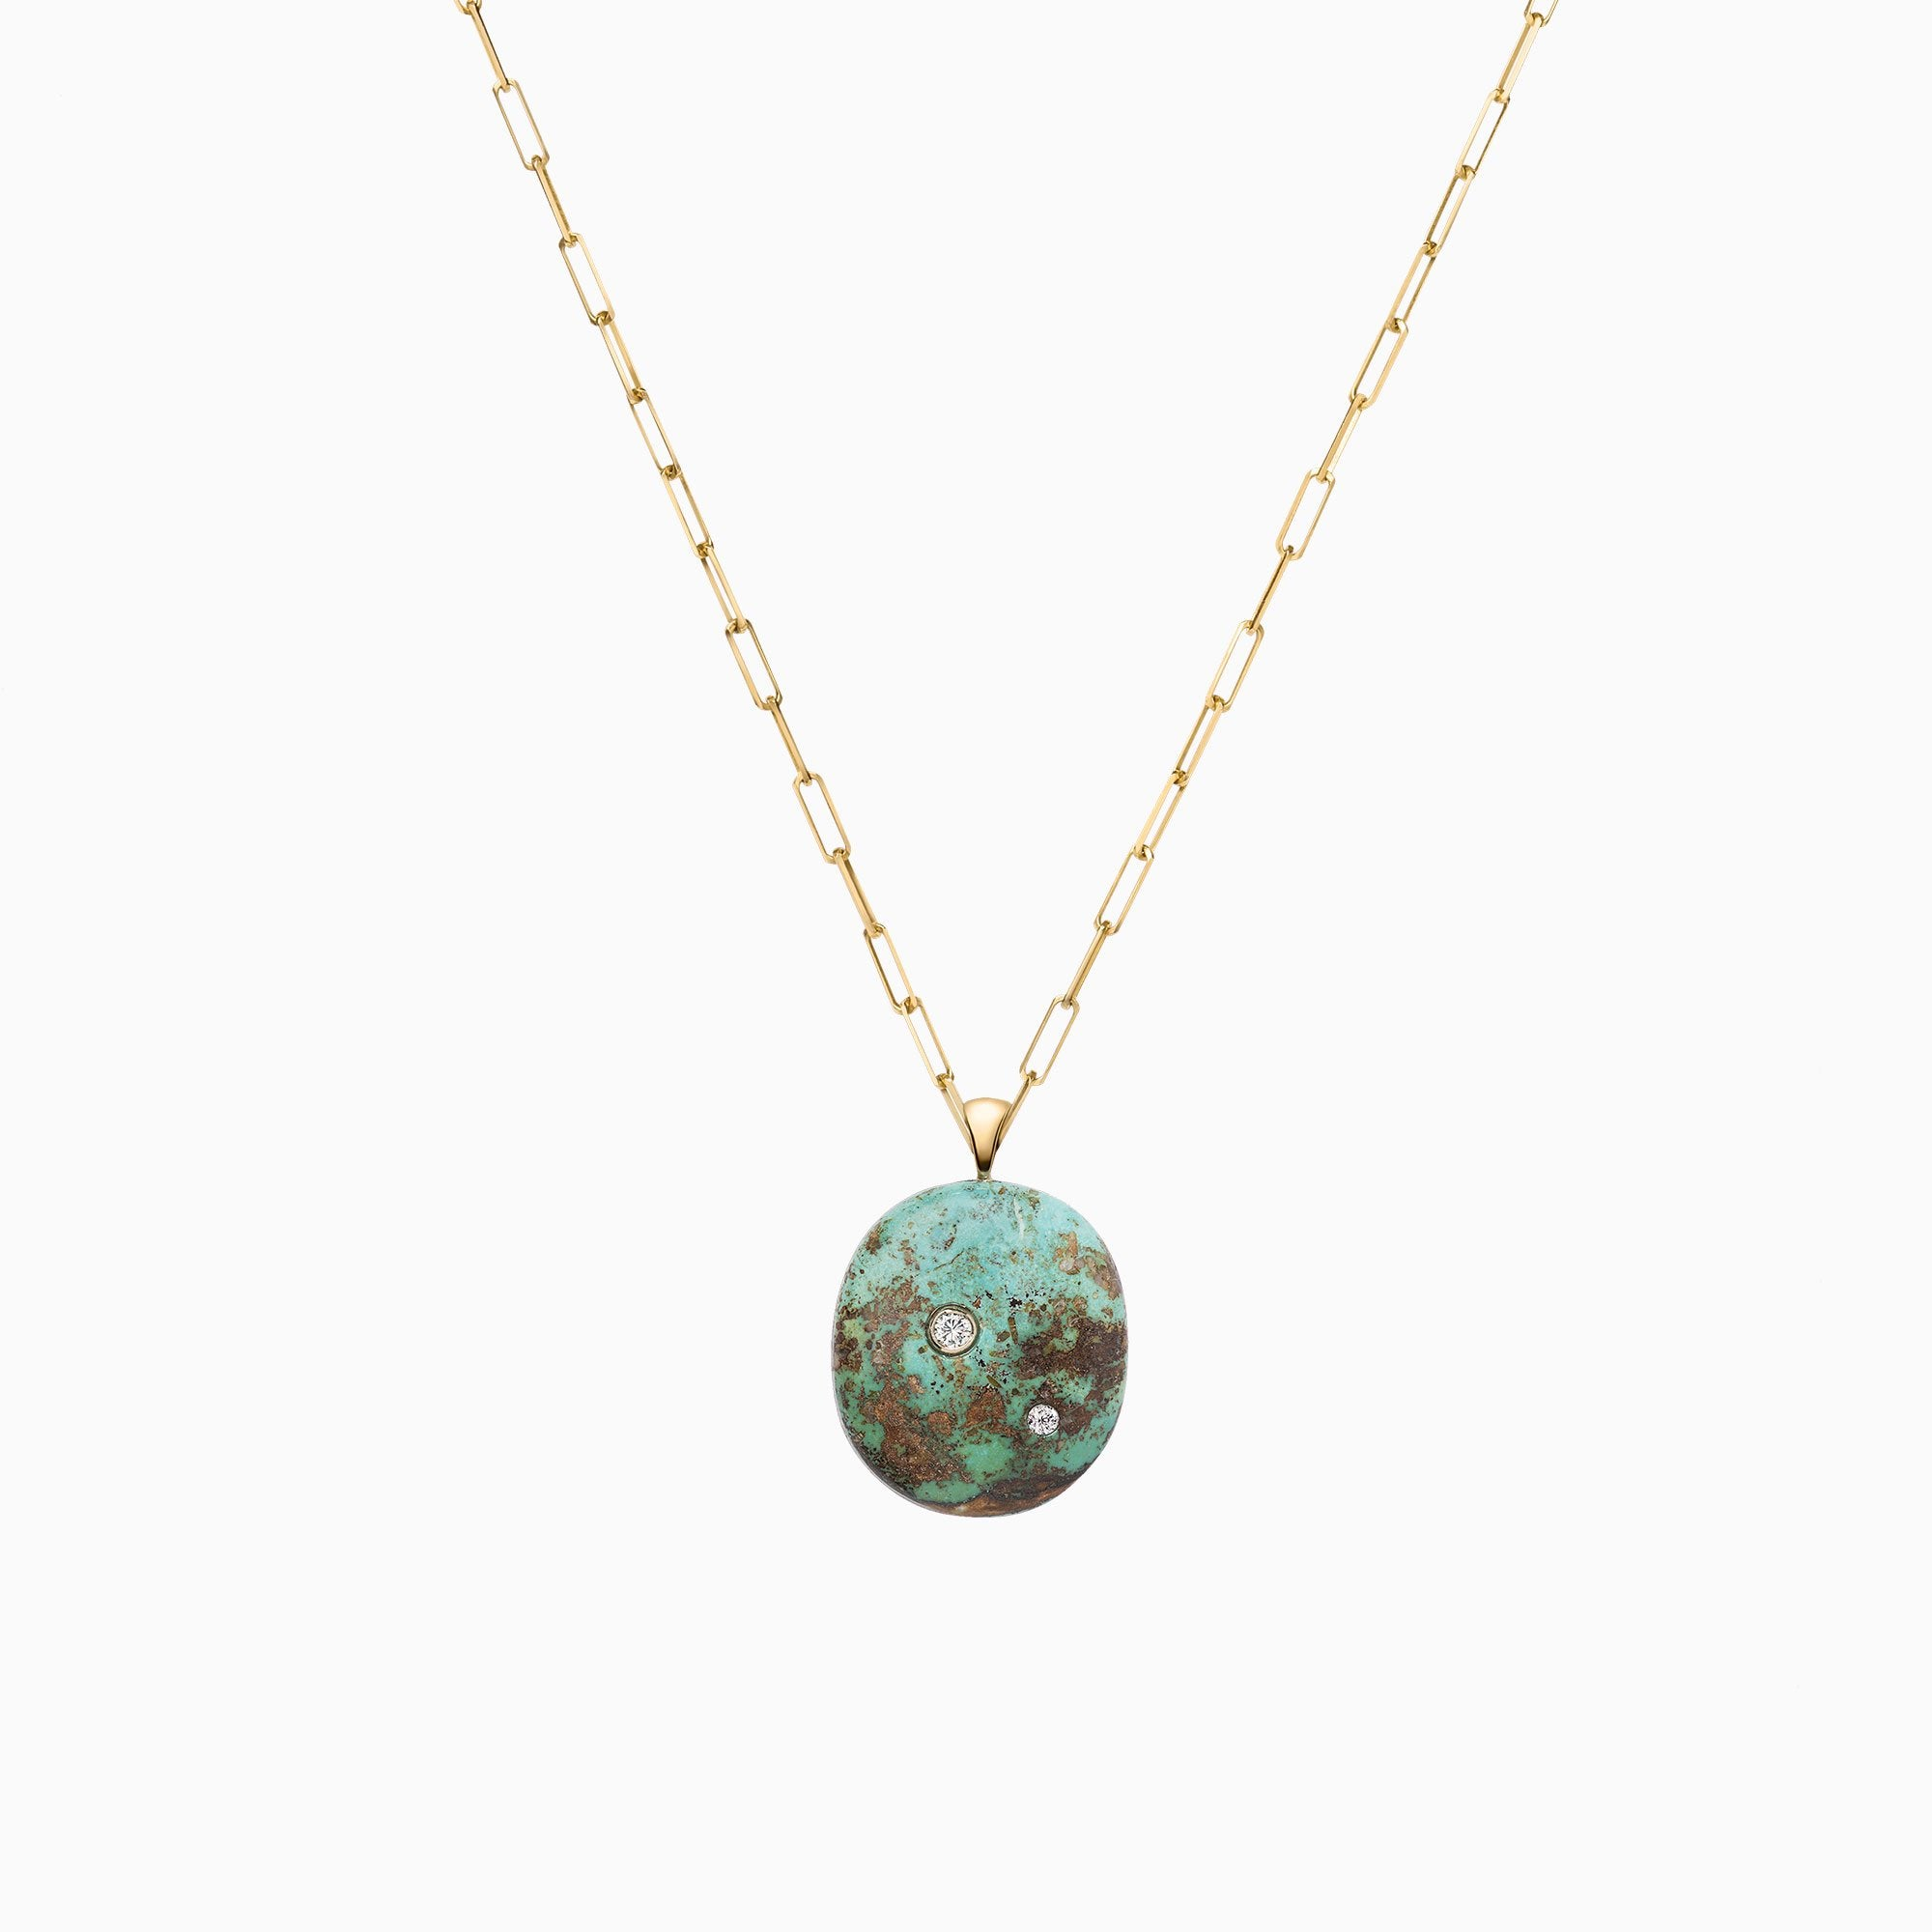 Nessa Designs Jewelry | Necklaces | Tranquil Blues Turquoise & Diamond